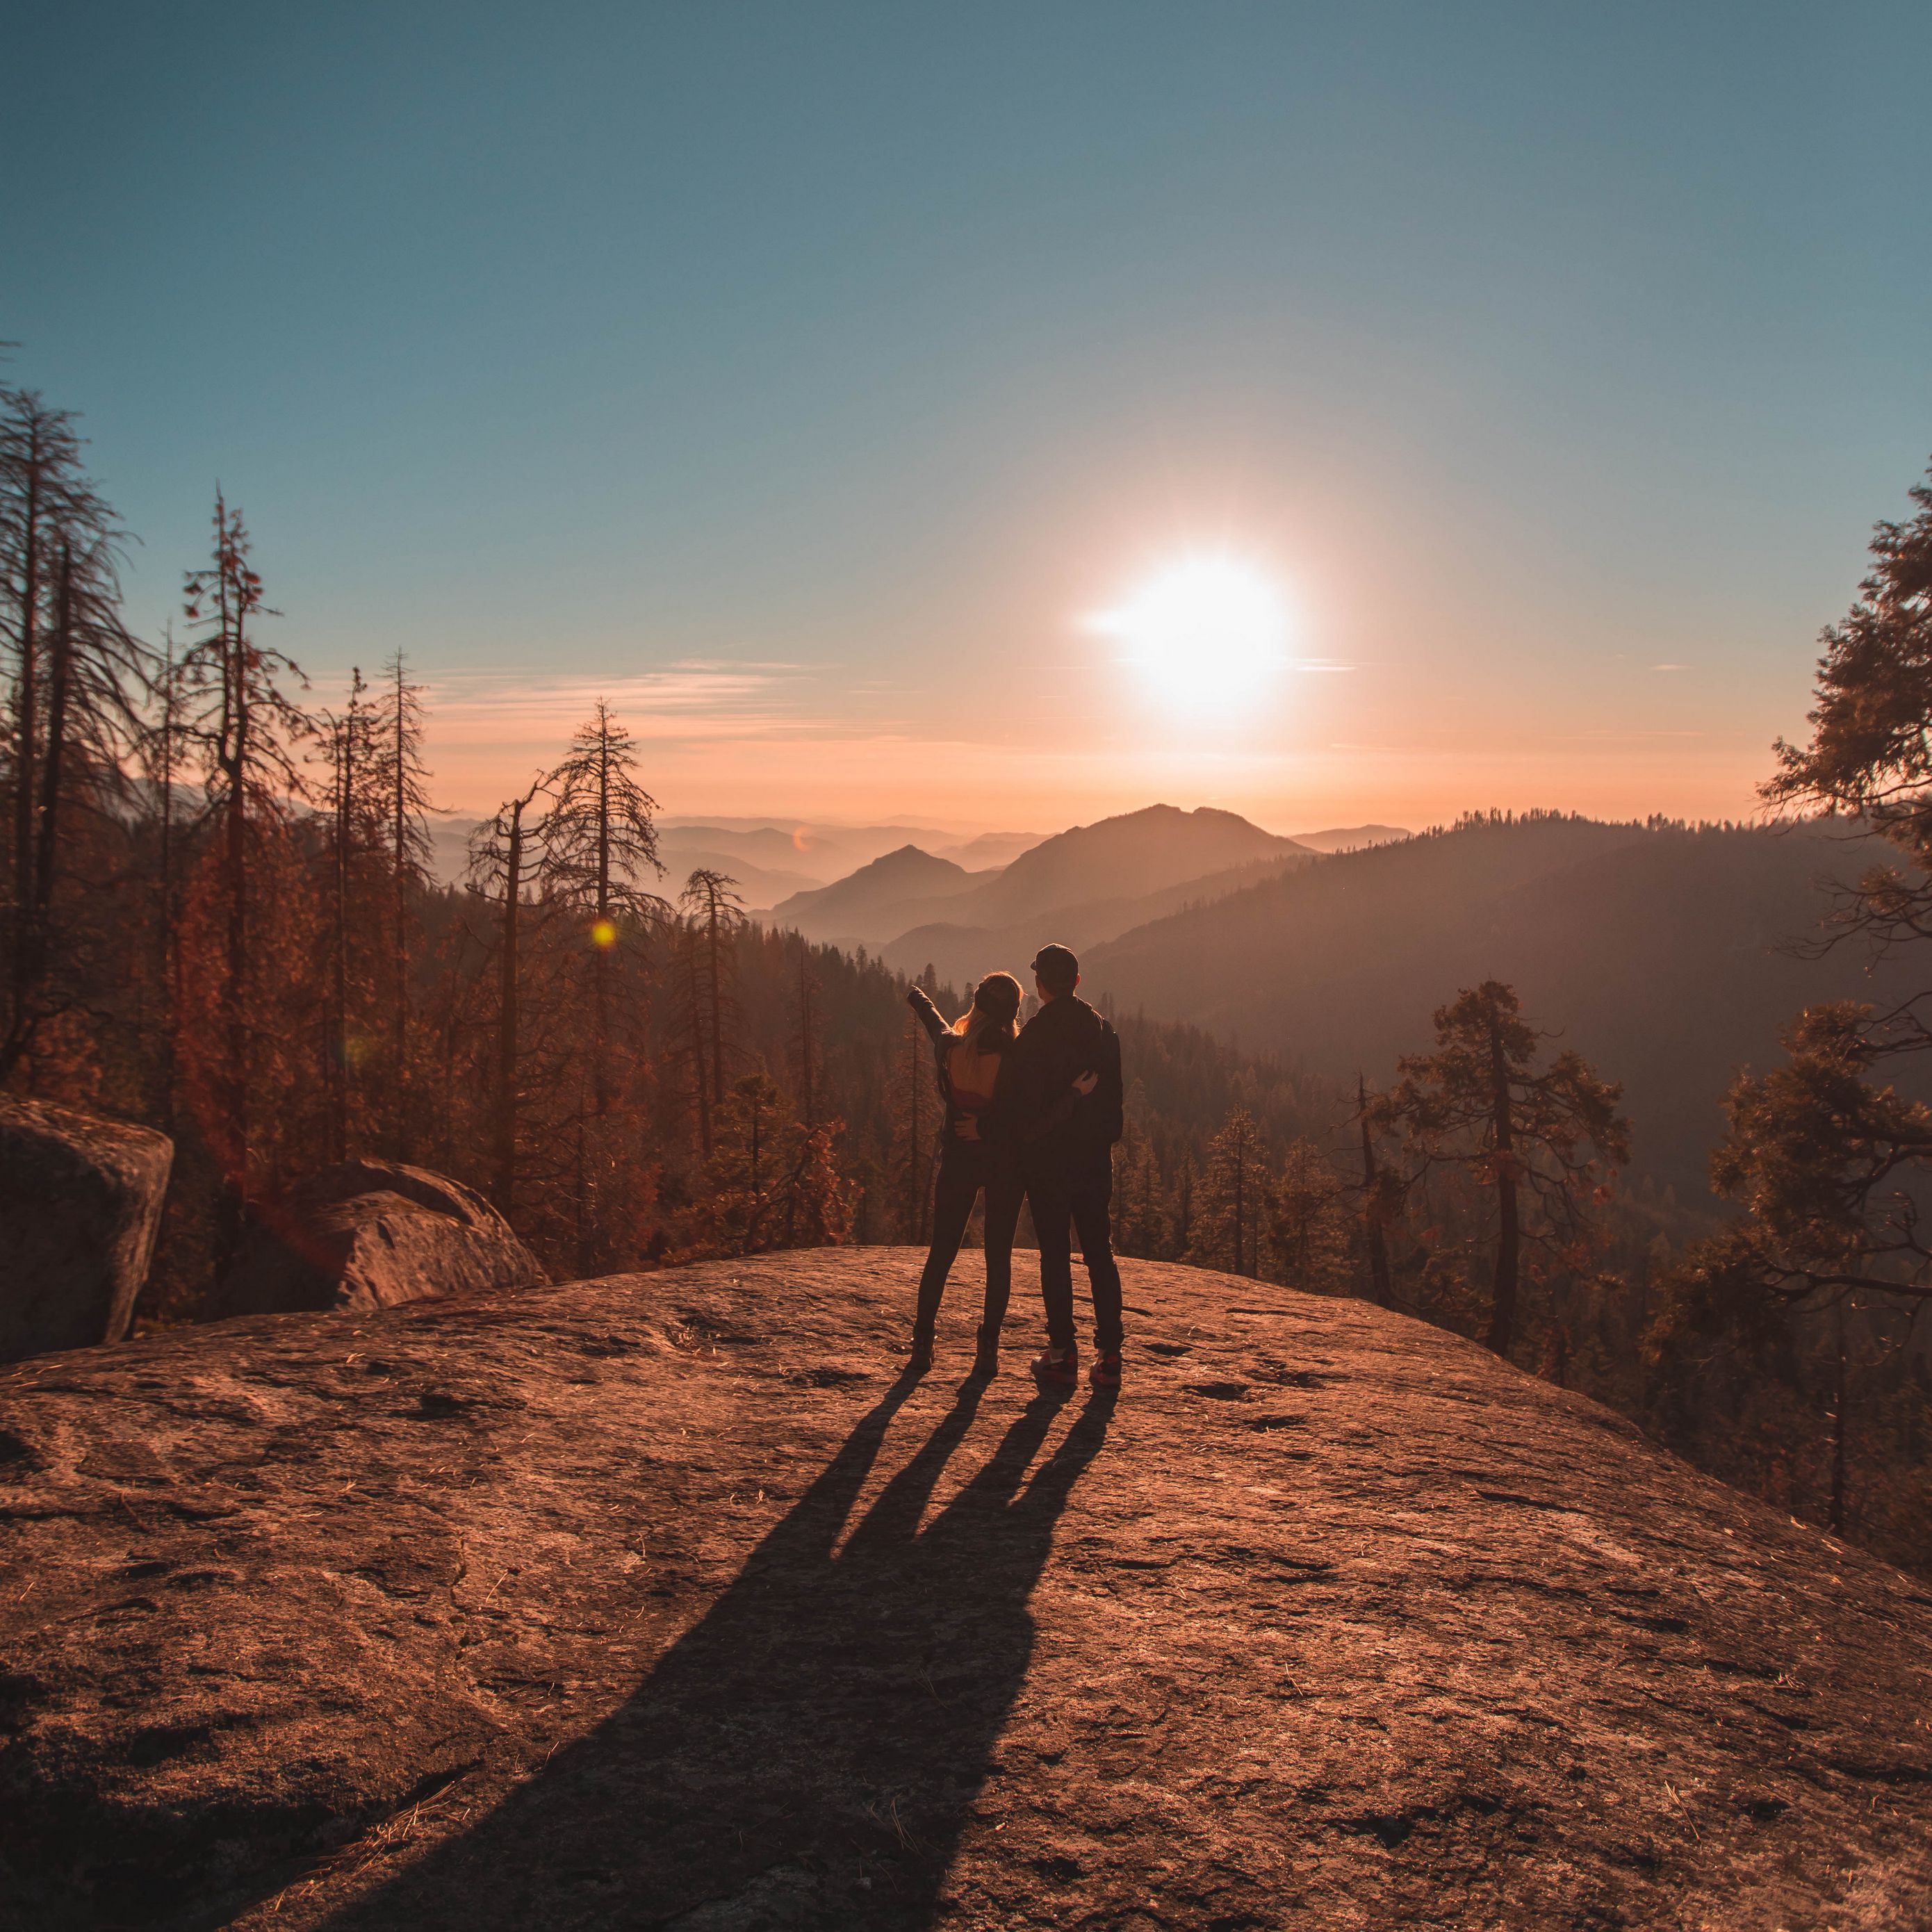 2780x2780 Wallpaper couple, mountains, travel, sunset, sequoia national park, united states